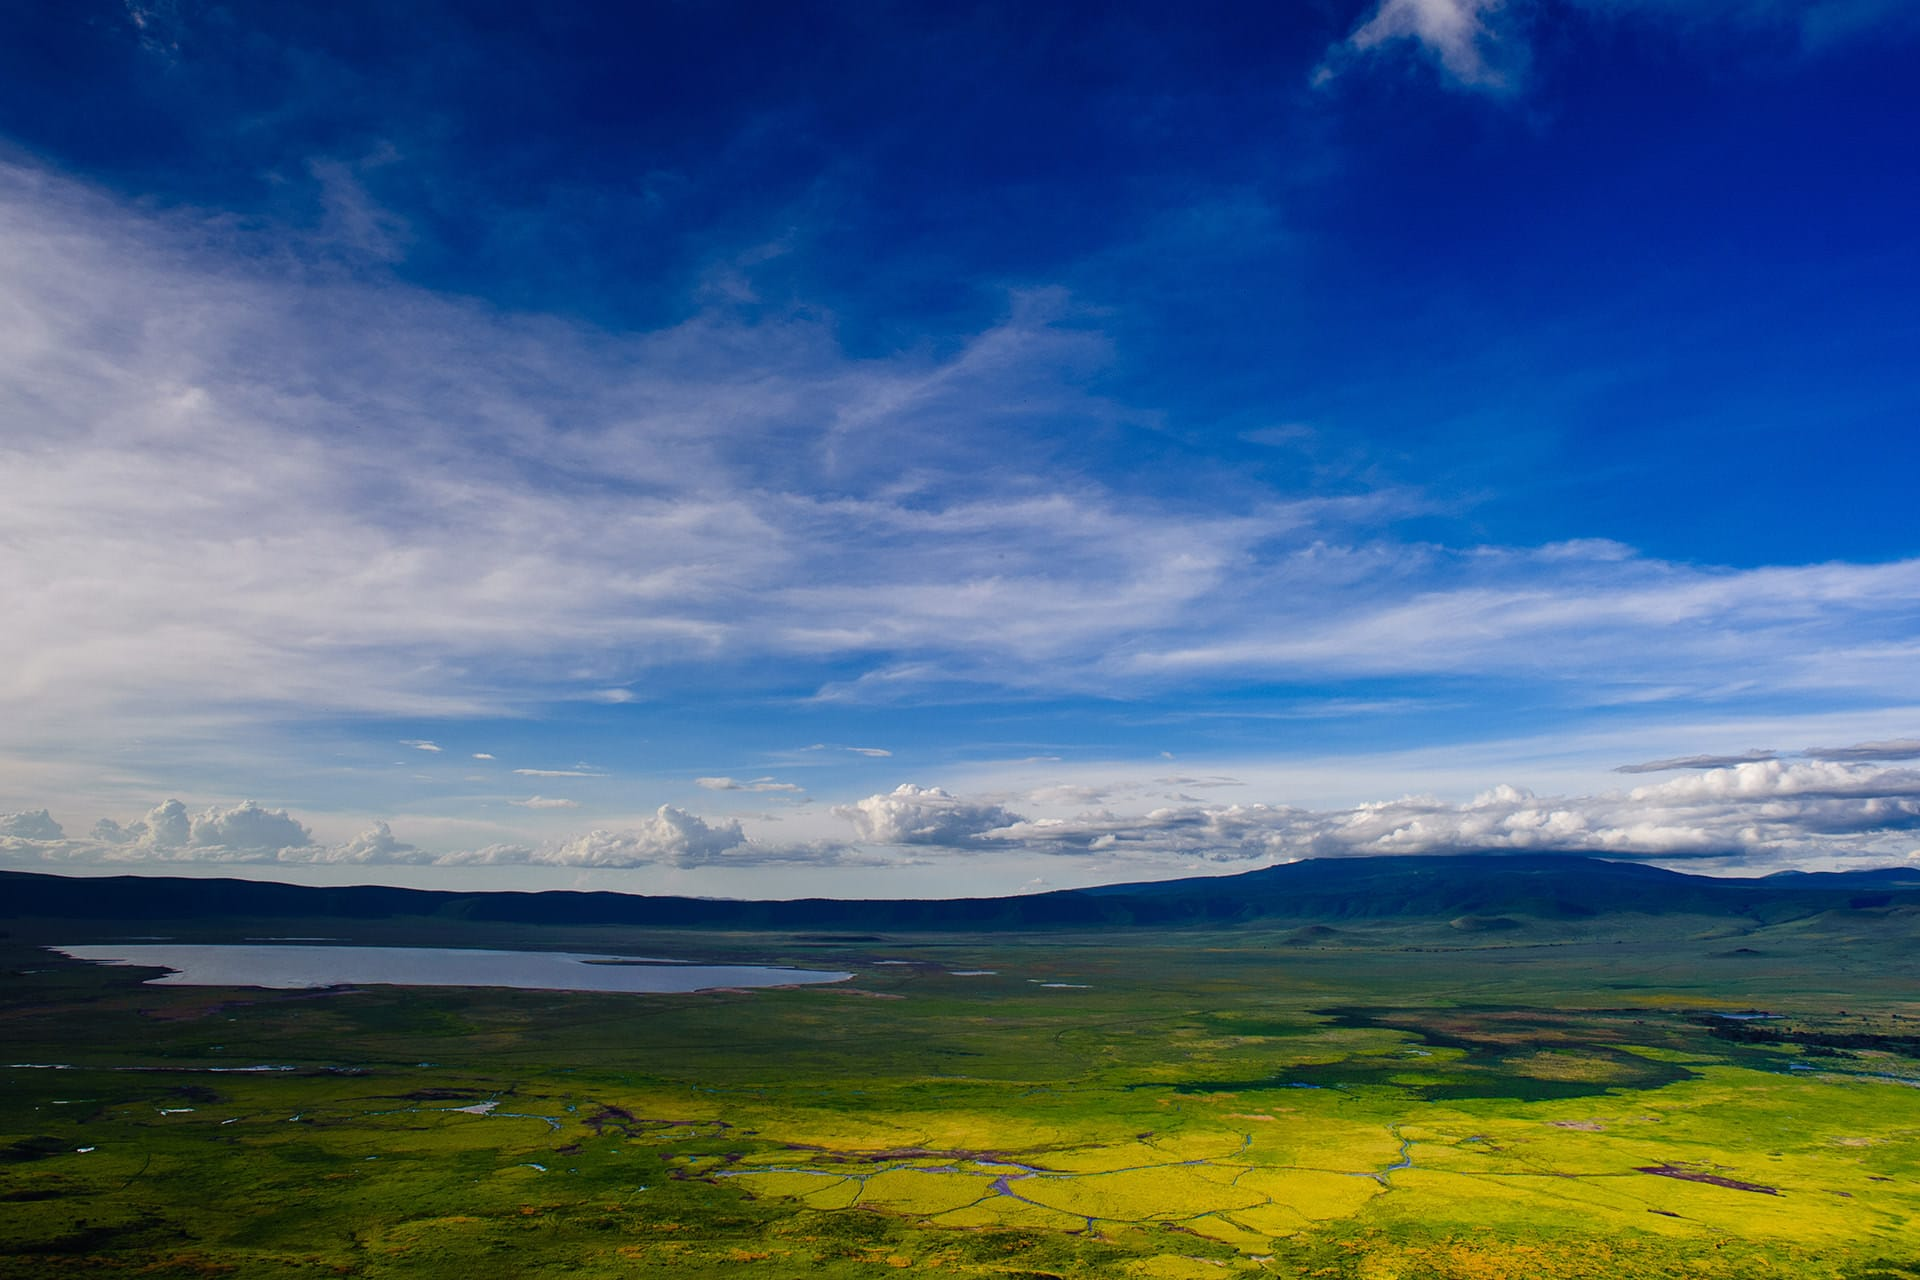 Adumu Safaris - Ngorongoro National Park